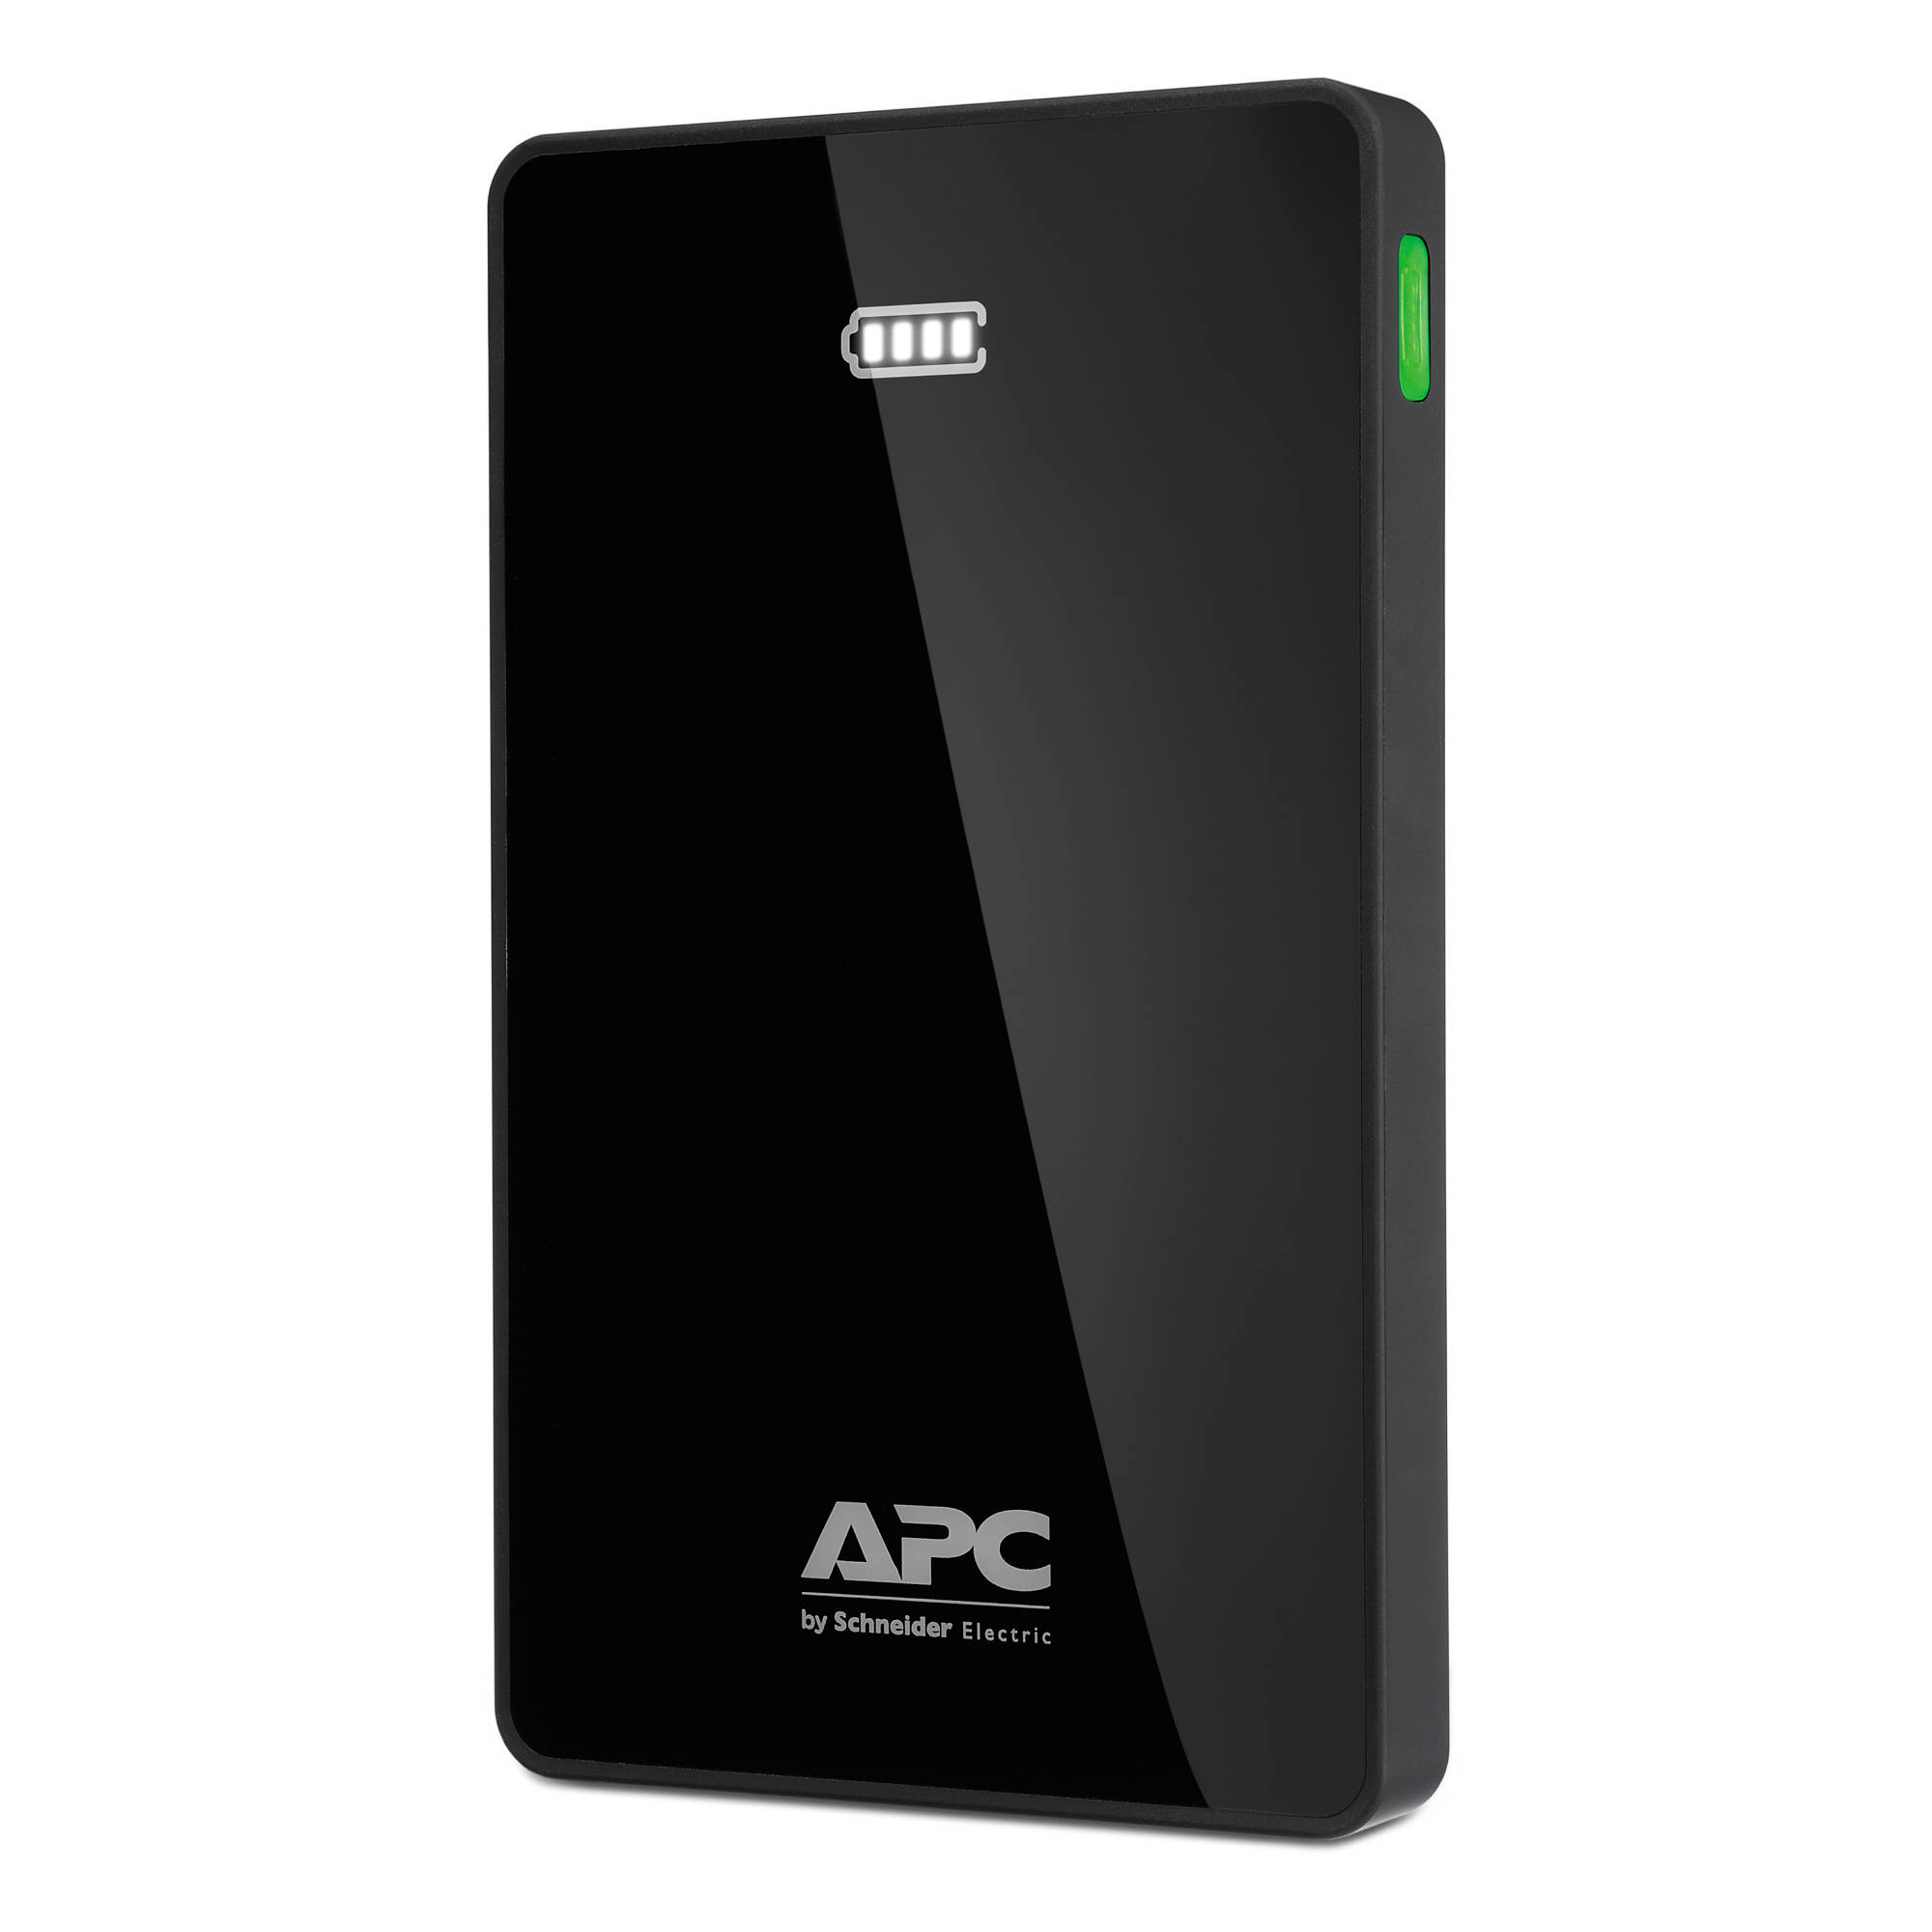 f2021afdf8a7e1 APC 10000mAh Mobile Power Pack (Black) M10BK B&H Photo Video